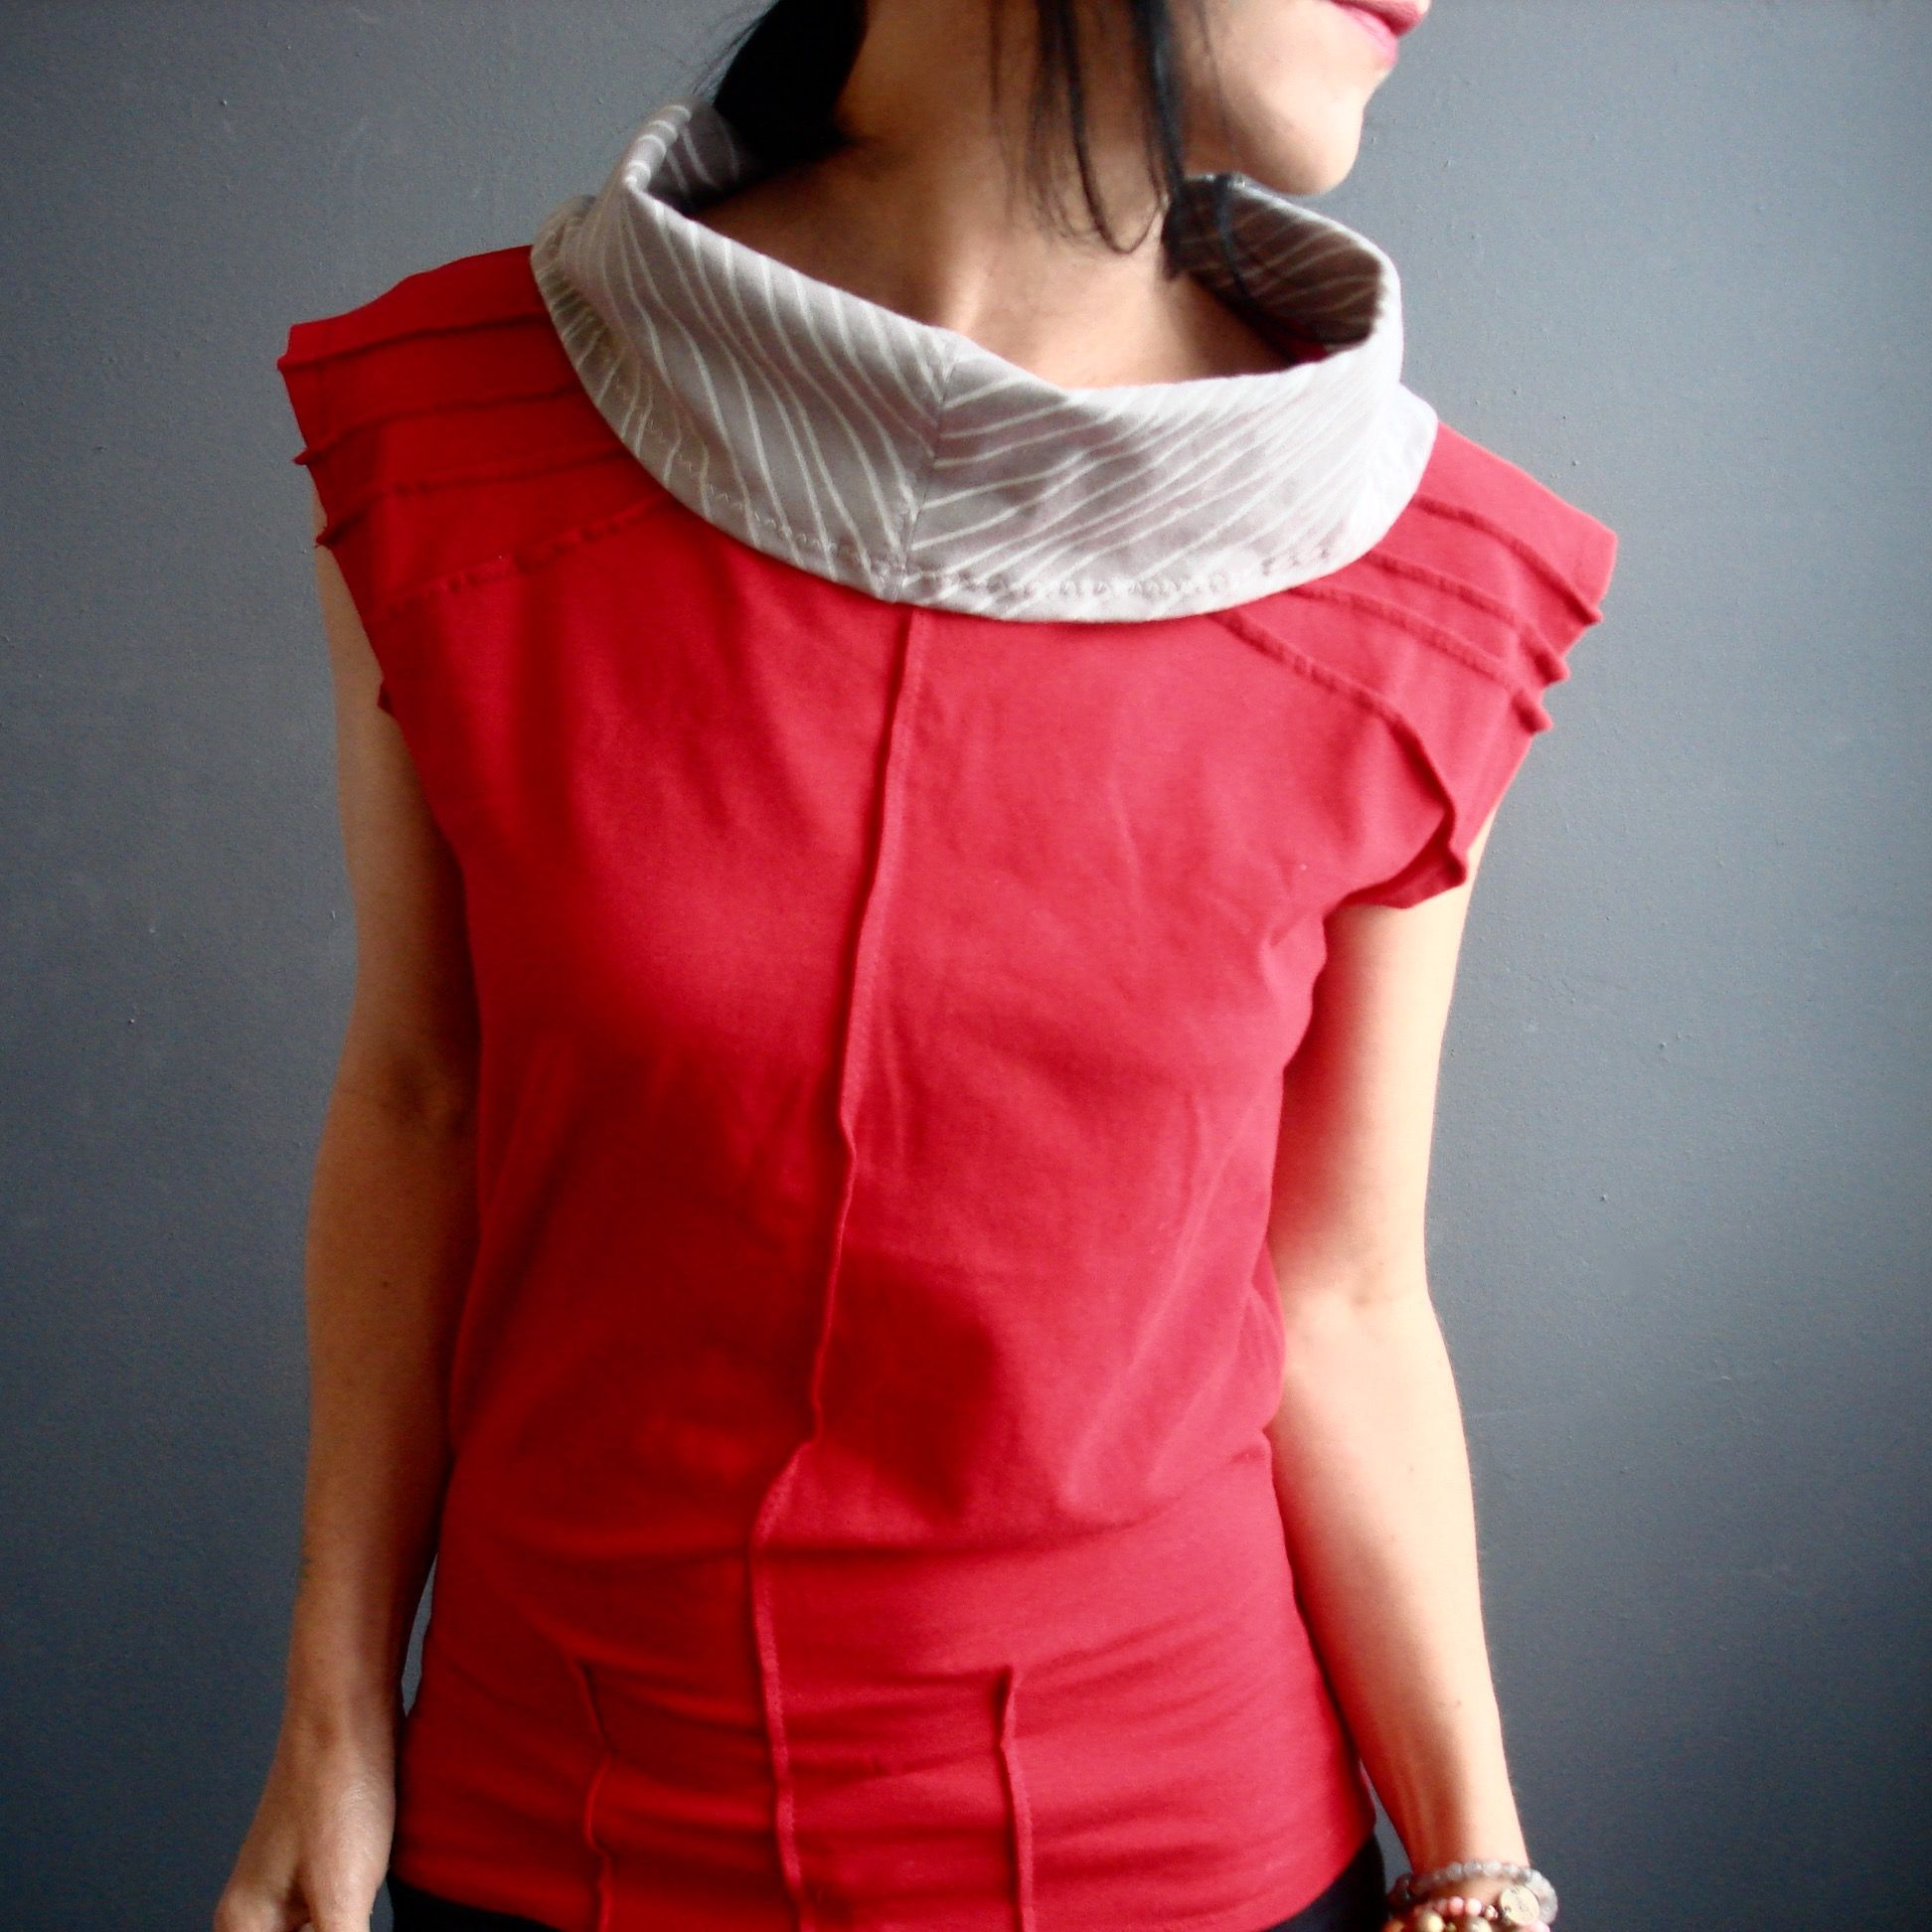 Break It Up – iheartfink Handmade Modern Chevron Cowl Top, Womens Hand Printed Red Gray Jersey Top, Sleeveless Wearable Art Top